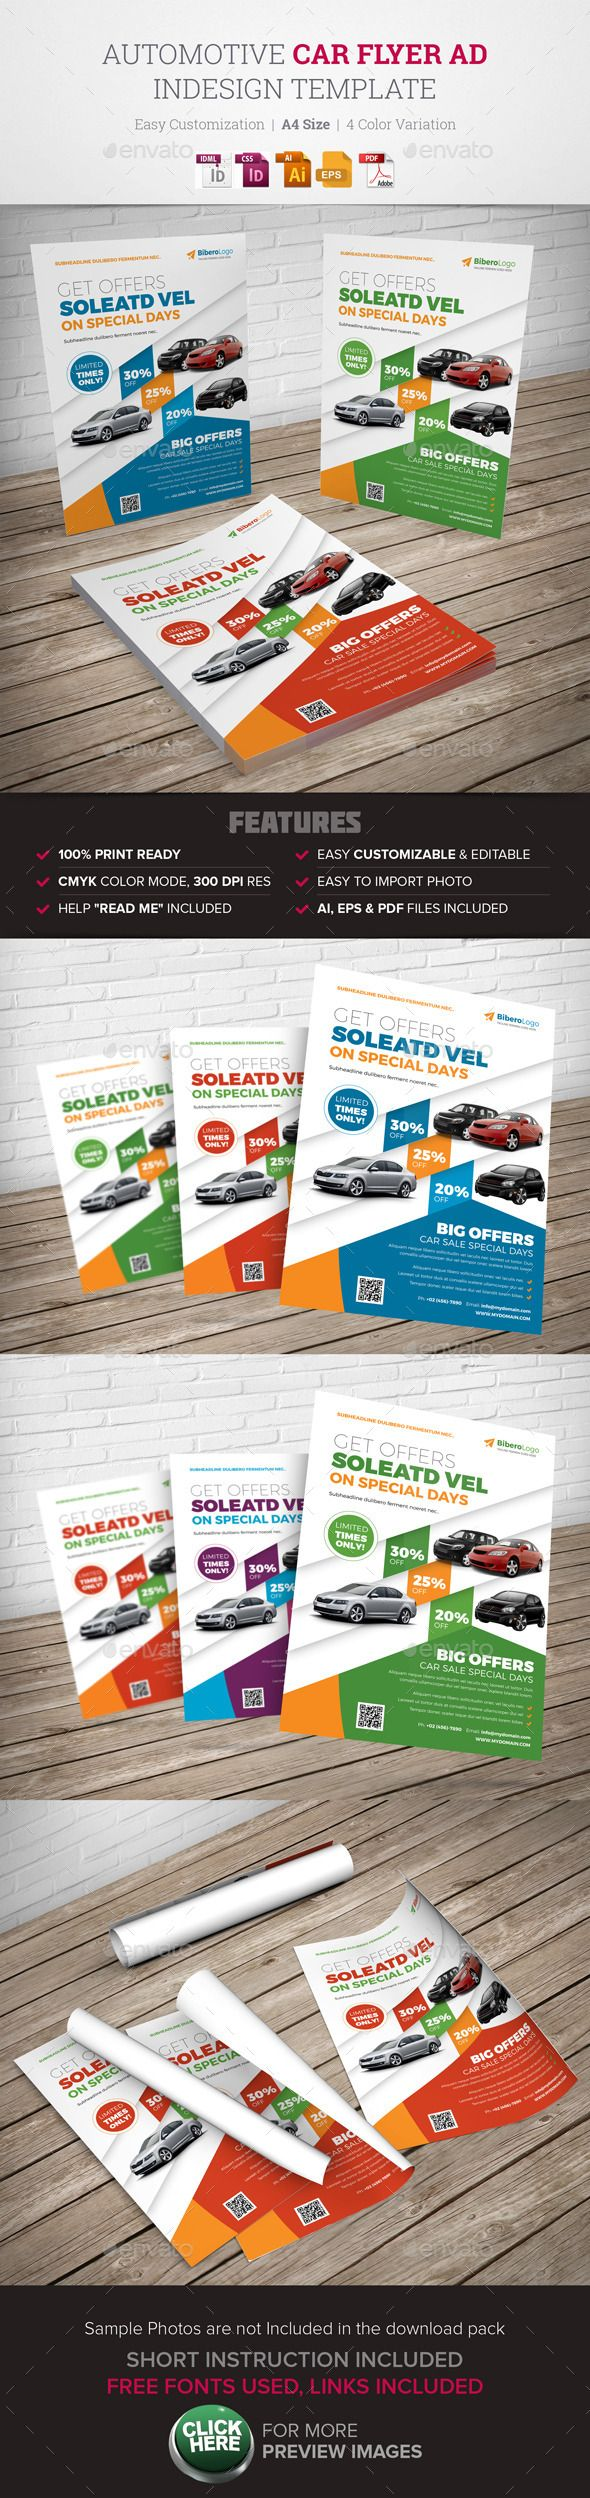 Car For Sale Flyer Automotive Car Flyer Ad Indesign Template  Automotive Graphic .